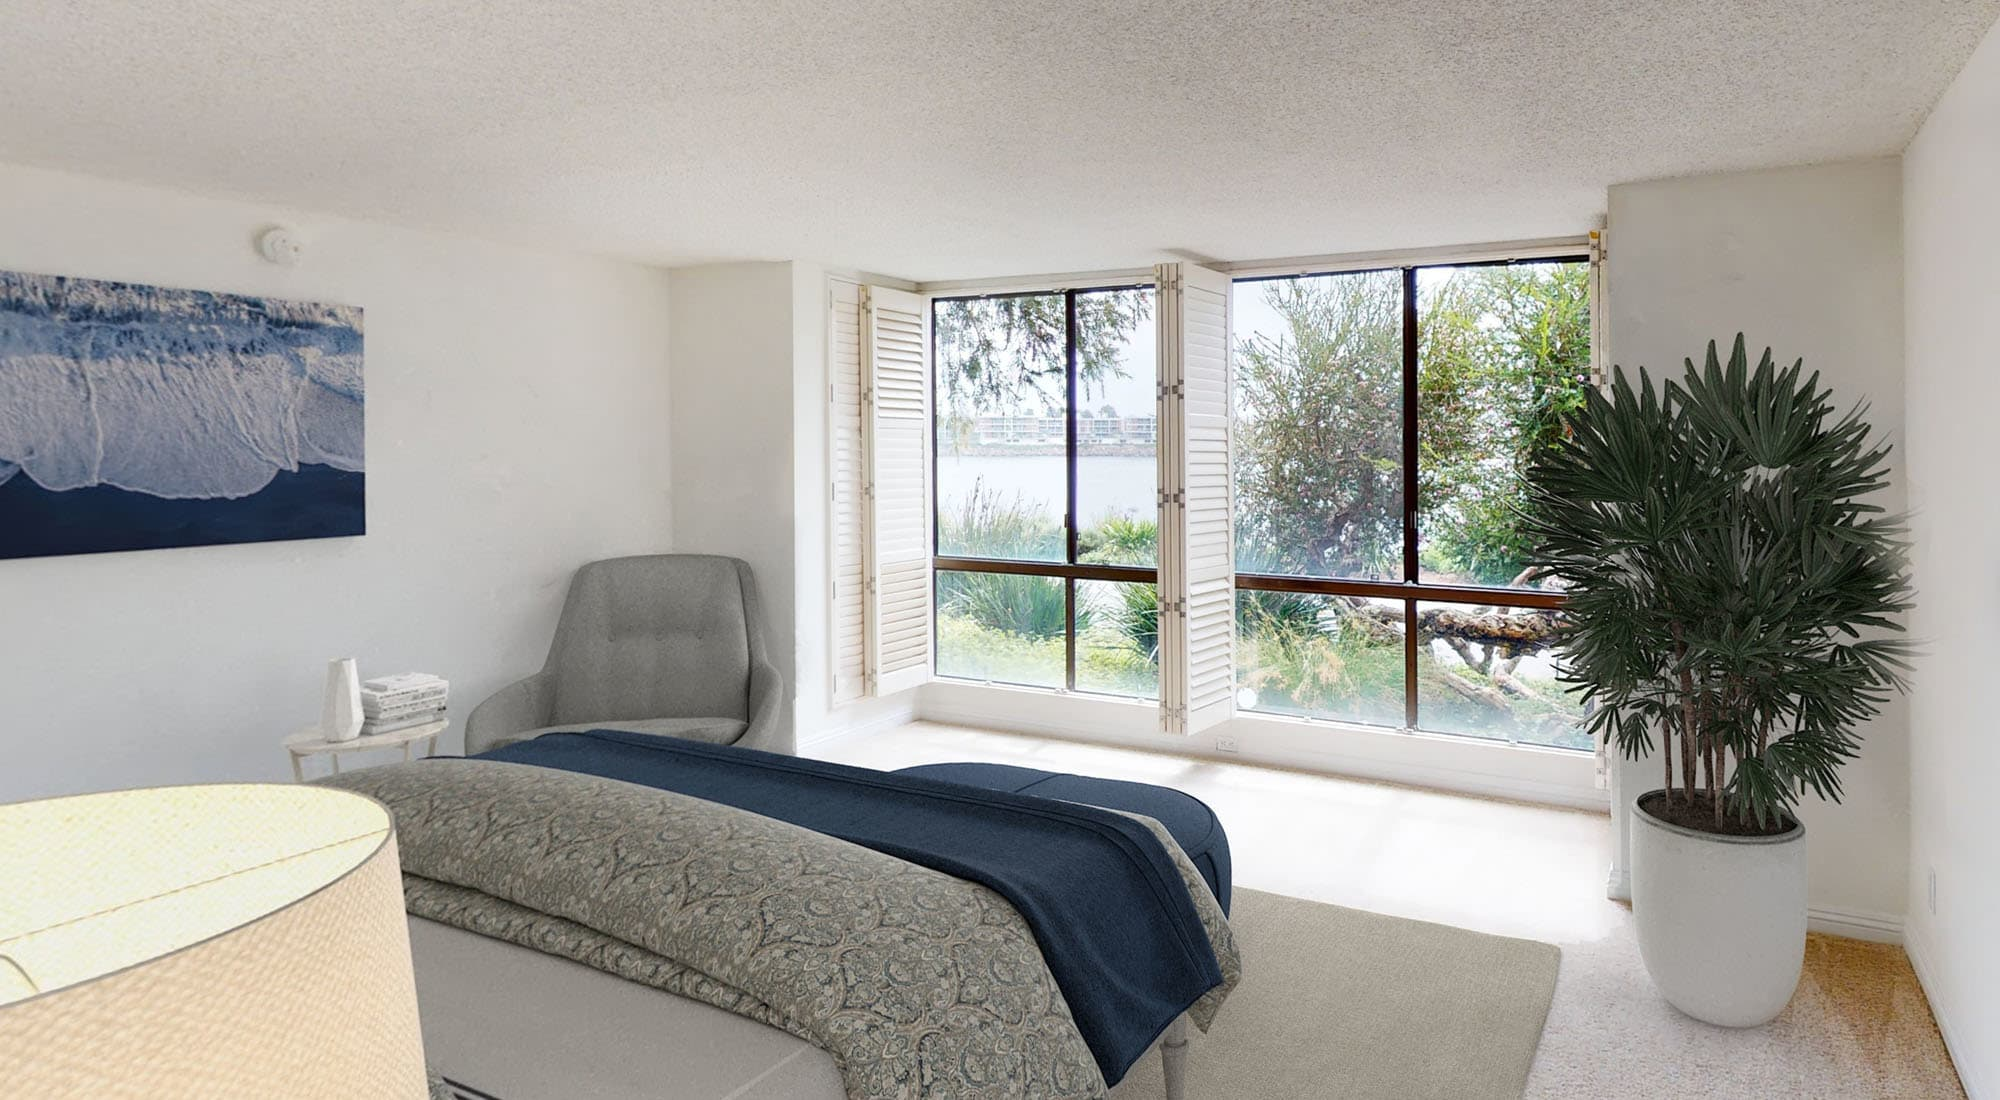 Bay windows and plenty of natural light in a model home's bedroom at Primary bedroom with large bay windows and a walk-in closet in a model home at Mariners Village in Marina del Rey, California